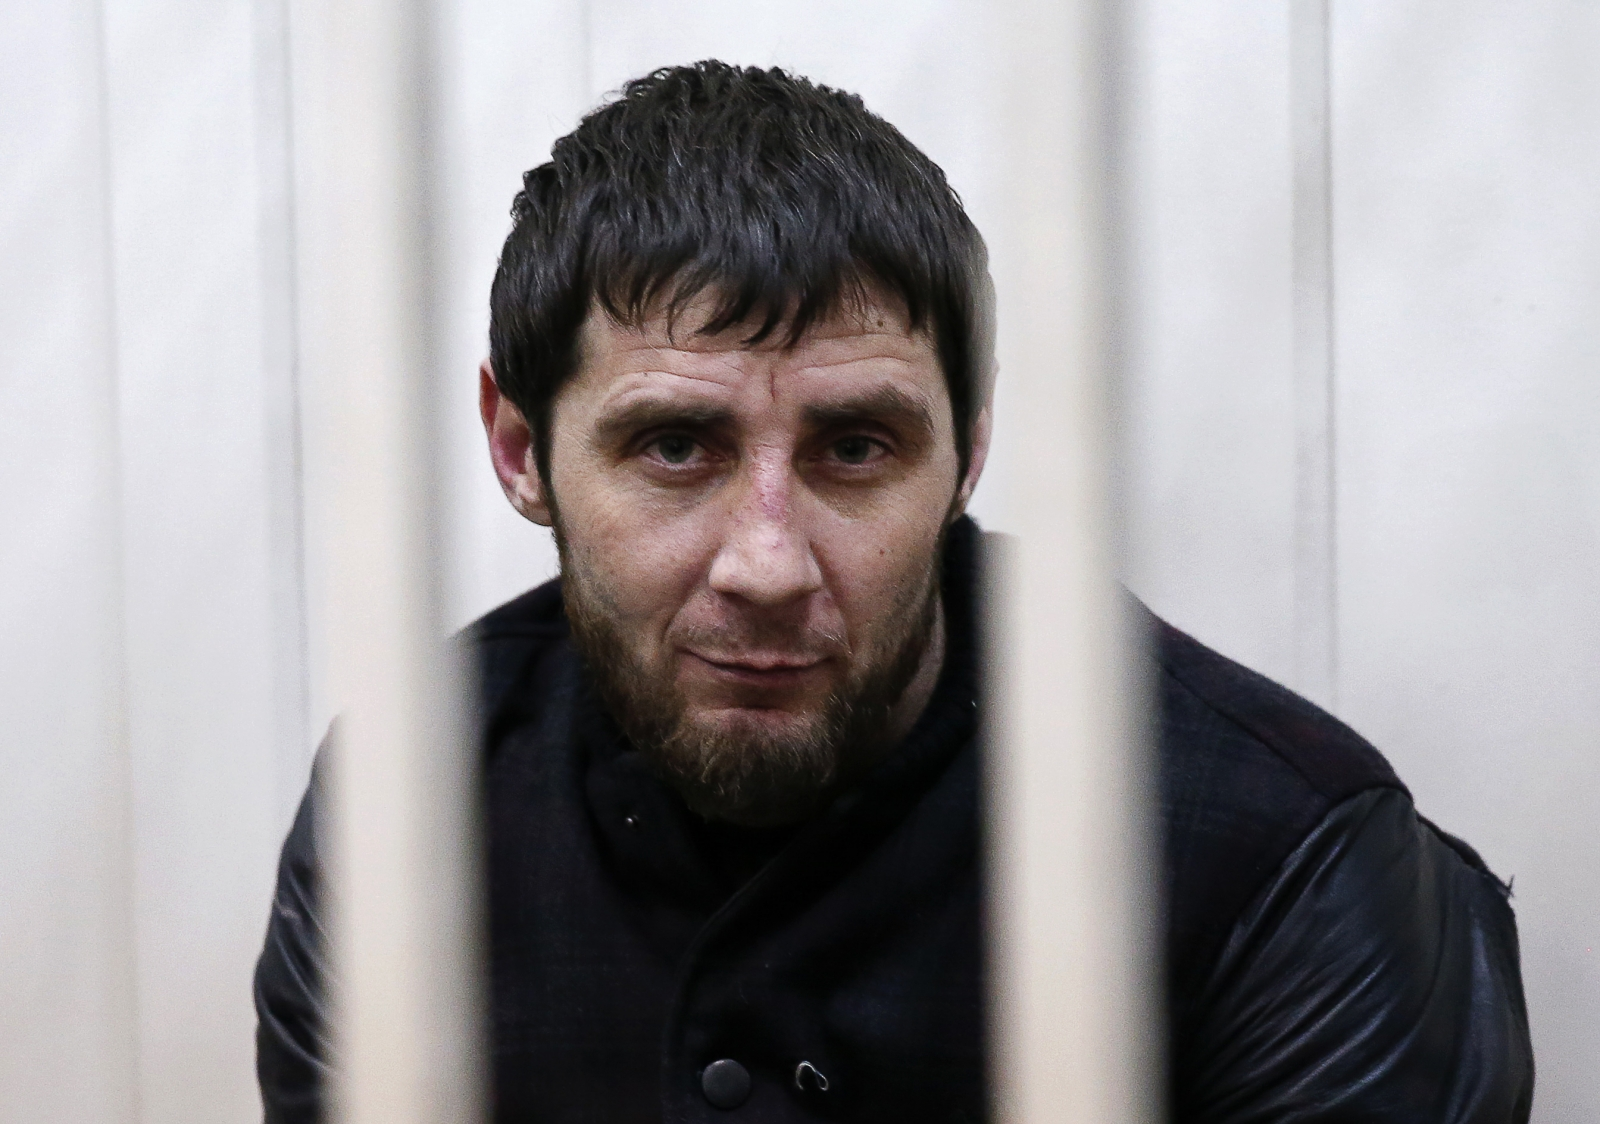 Boris Nemtsov murder: Five men guilty of killing Russian opposition politician